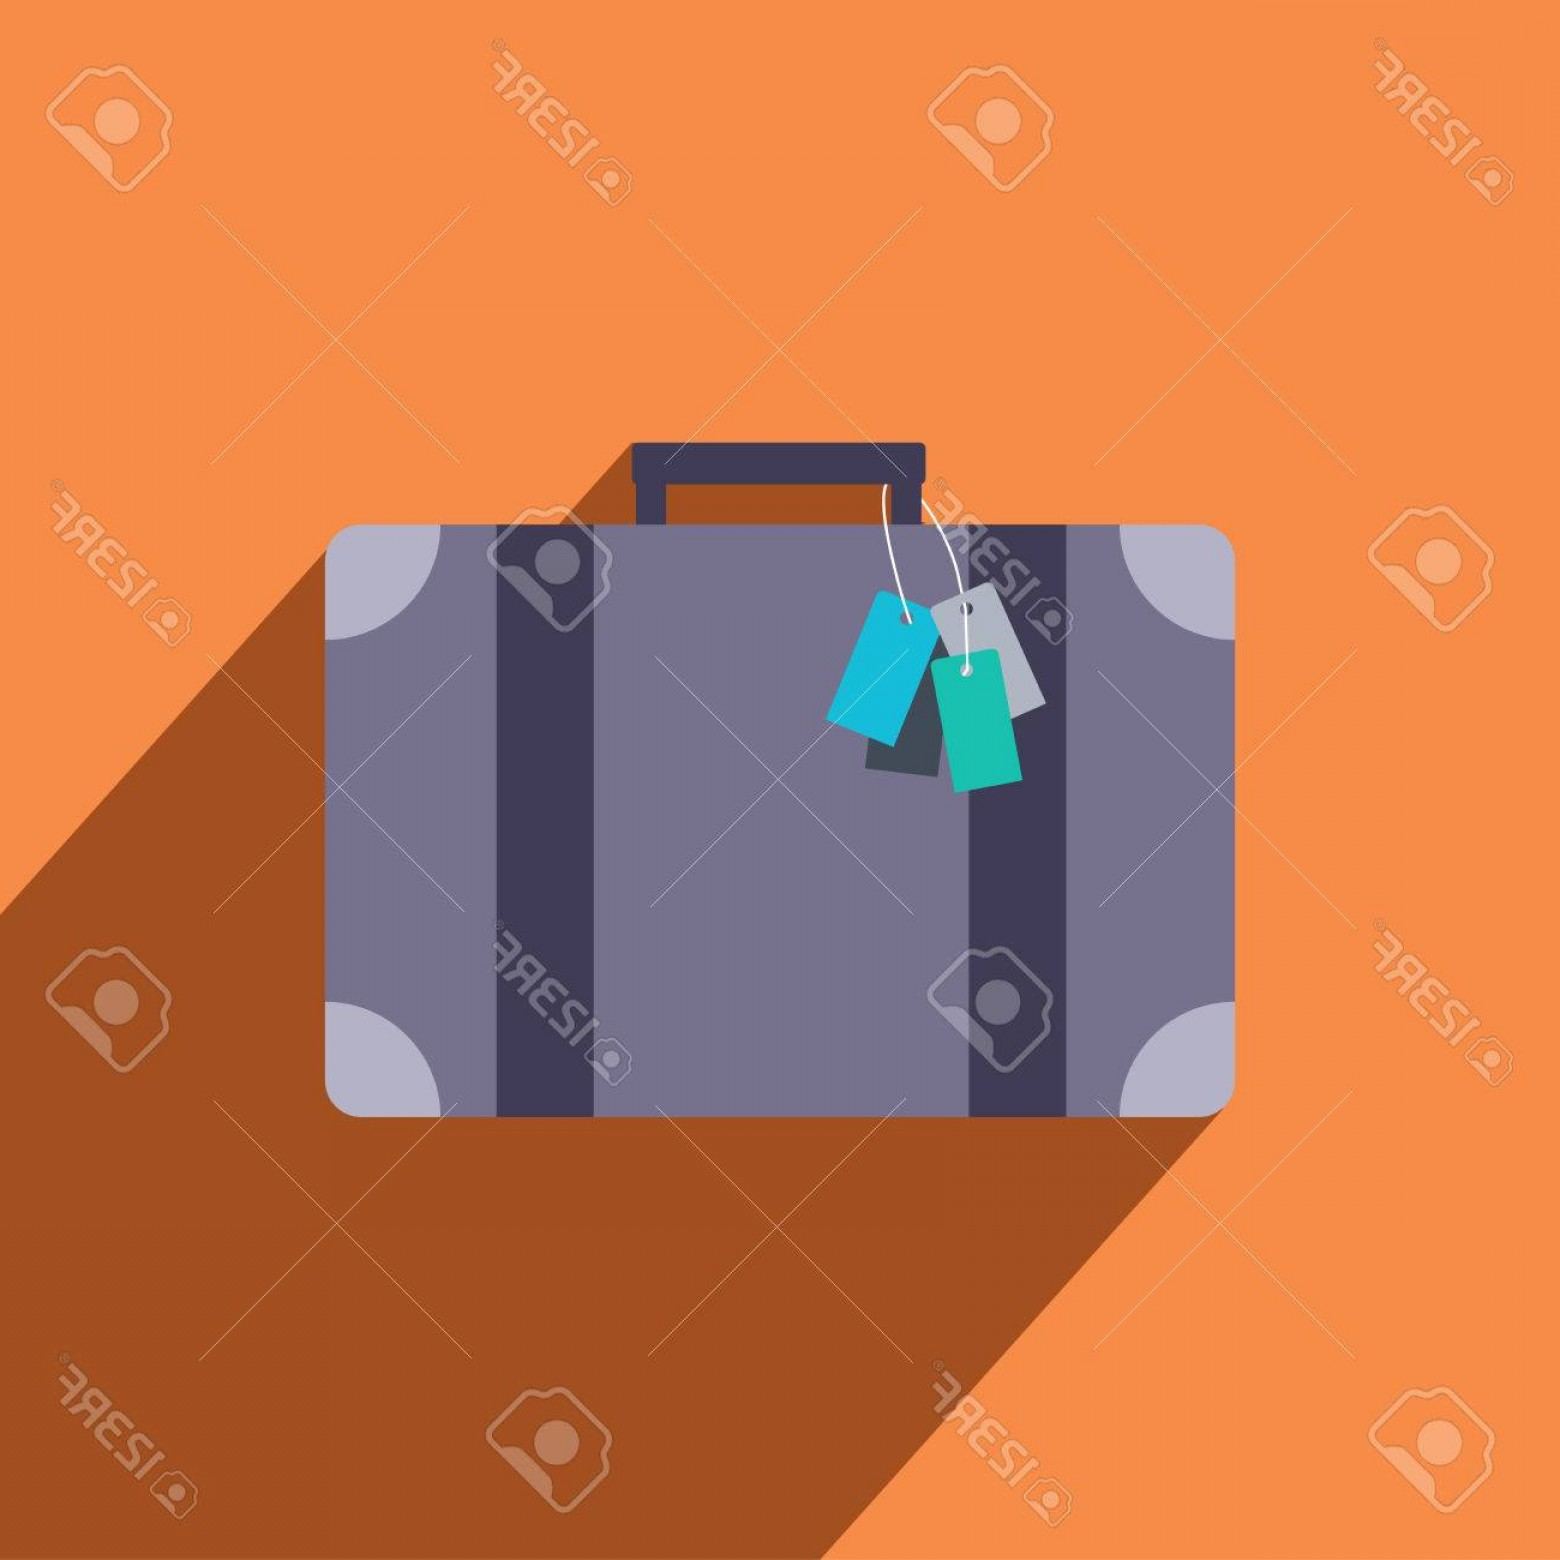 Vintage Luggage Vector: Photostock Vector Vintage Luggage Vector Icon In Flat Design With Long Shadows